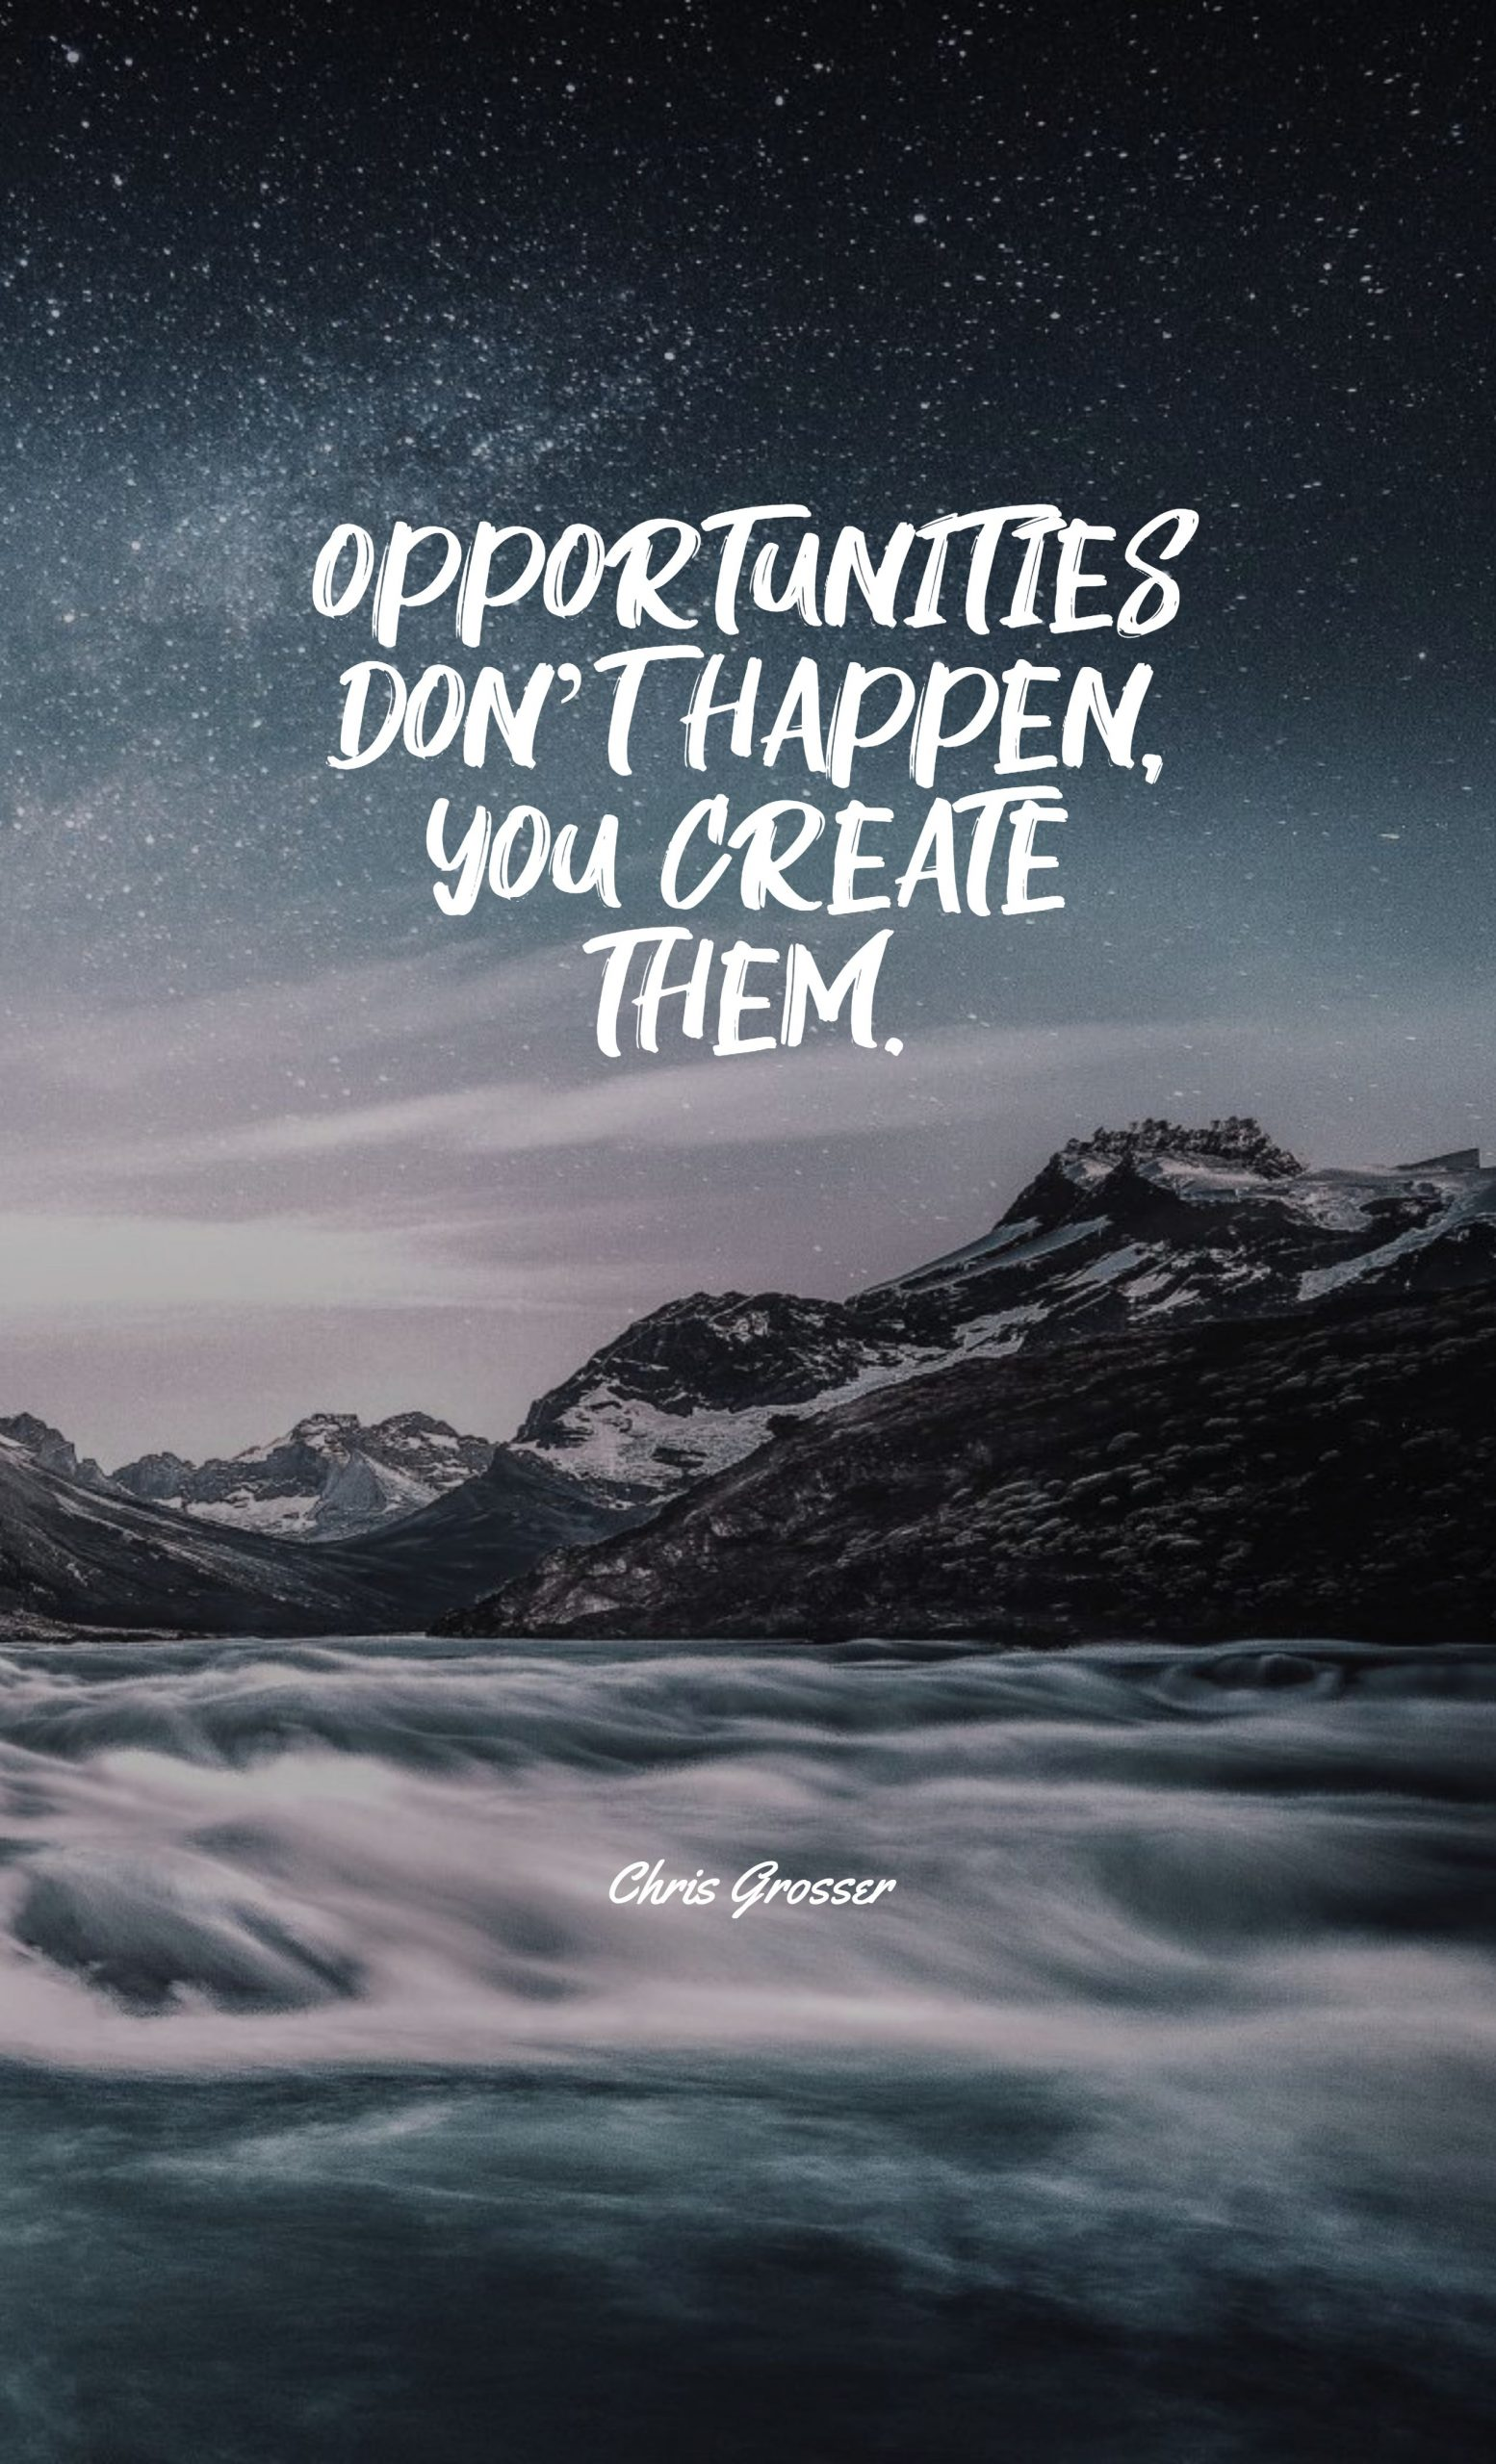 Quotes image of Opportunities don't happen, you create them.